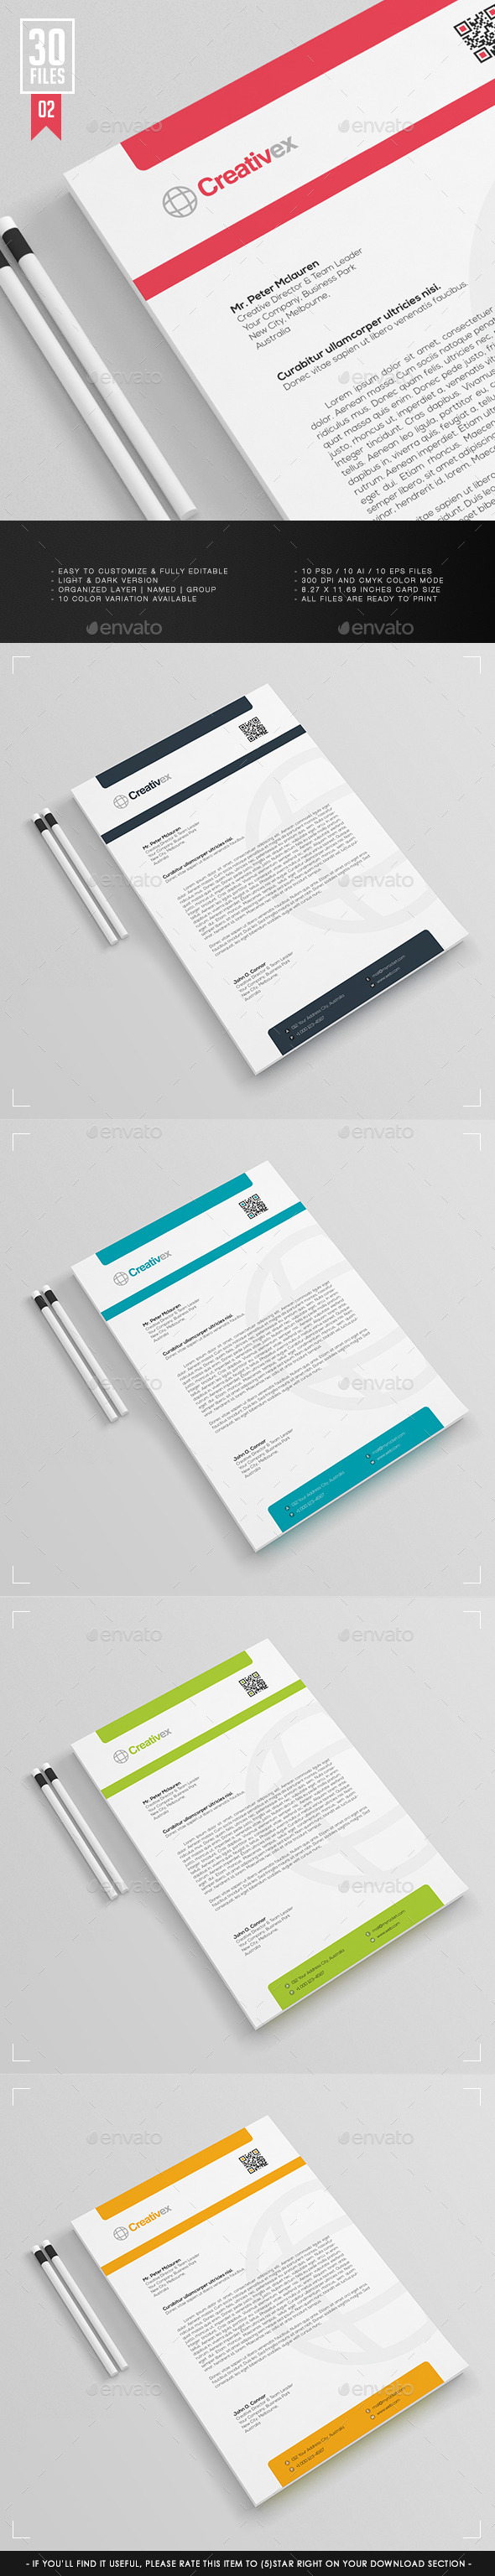 A4 30 Files - Business Letterhead V.001 - Stationery Print Templates